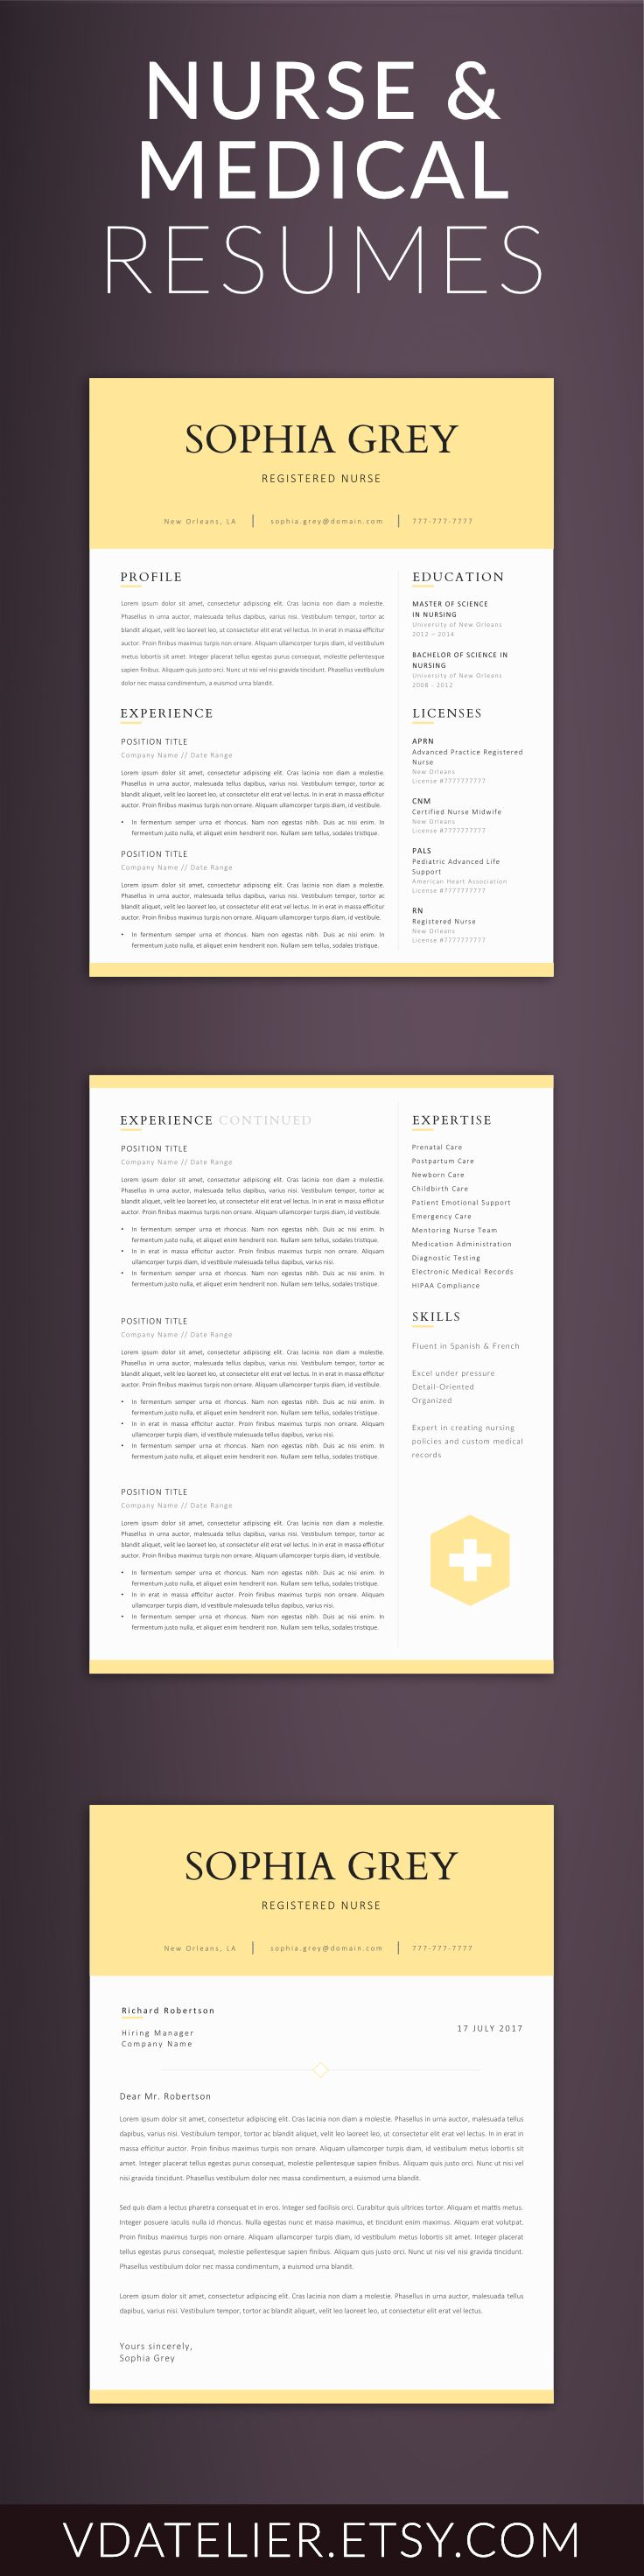 Beautiful 1 Page Resume Format Download Thick 1 Page Resume Or 2 Regular 1 Year Experience Java Resume Format 11x17 Graph Paper Template Youthful 15 Year Old Funny Resume Yellow15 Year Old Student Resume 25  Best Ideas About Nursing Resume Template On Pinterest | Rn ..